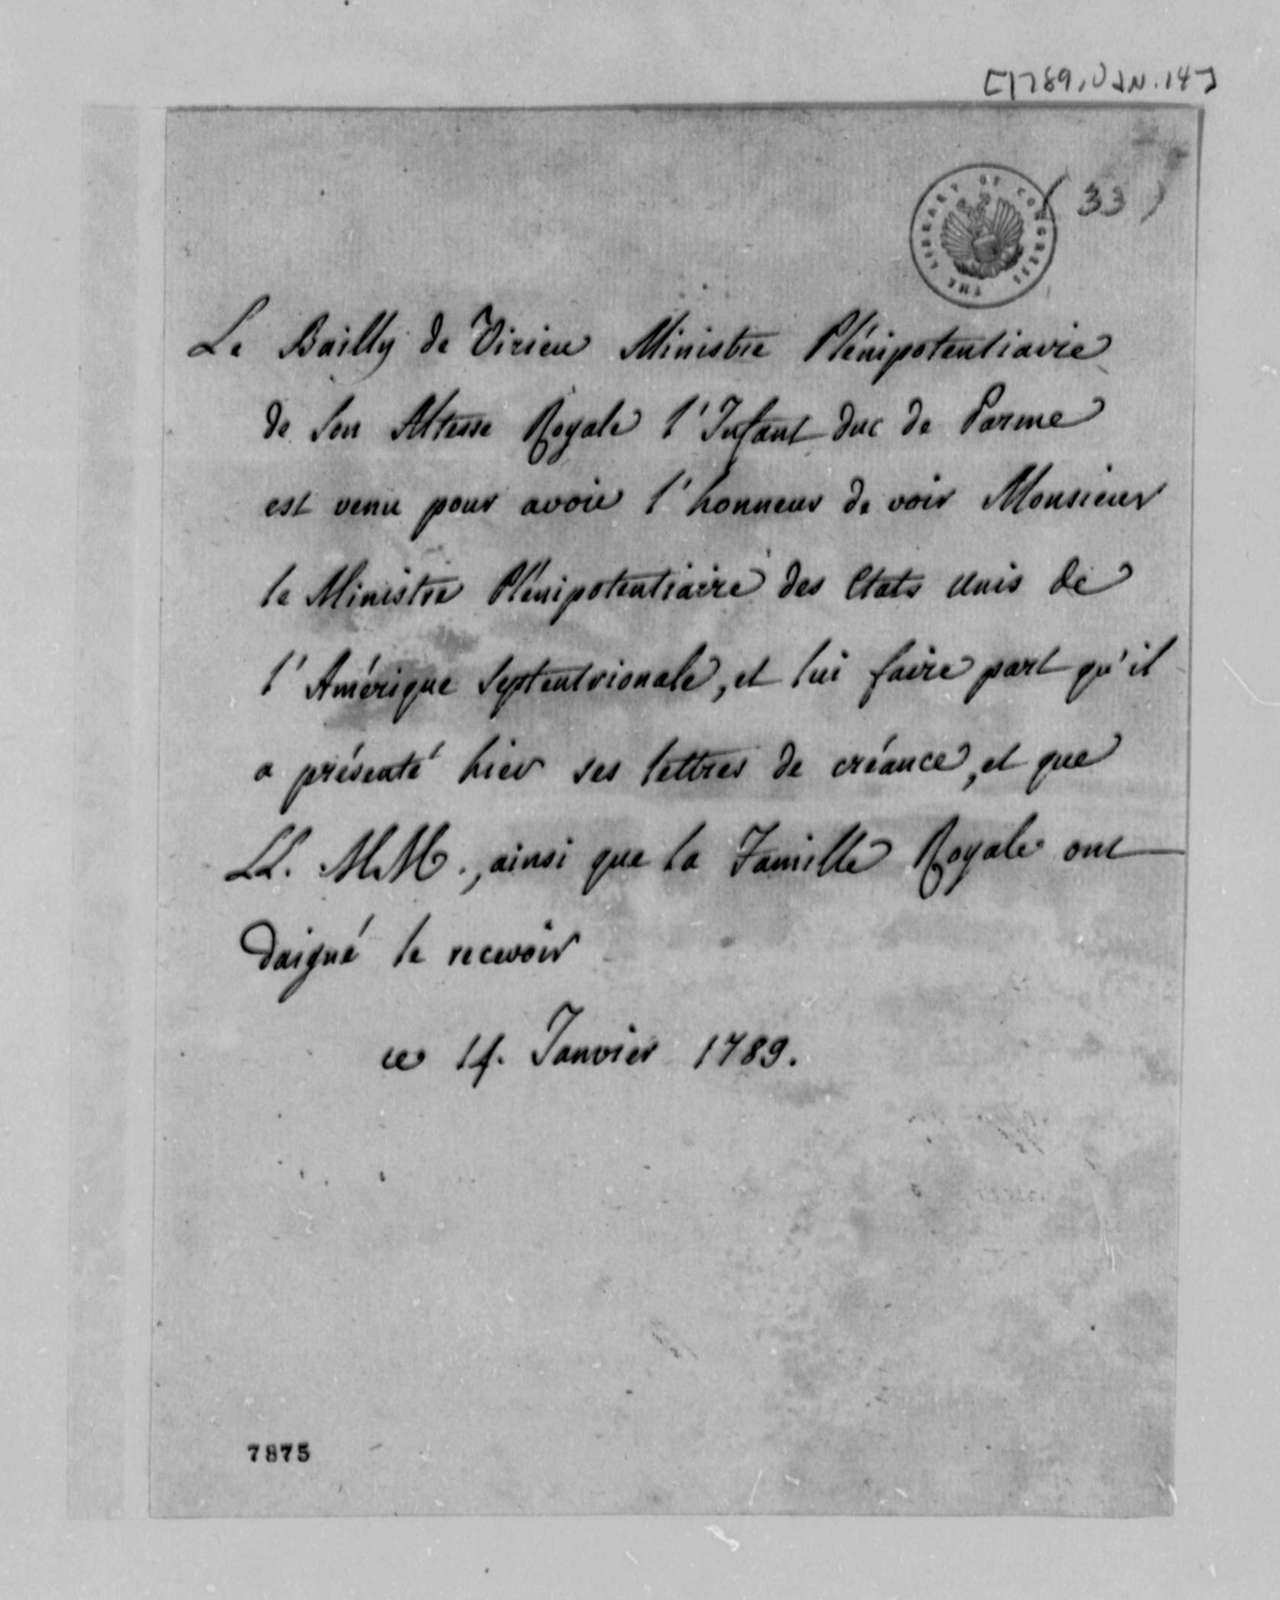 Le Bailly de Virieu to Thomas Jefferson, January 14, 1789, in French